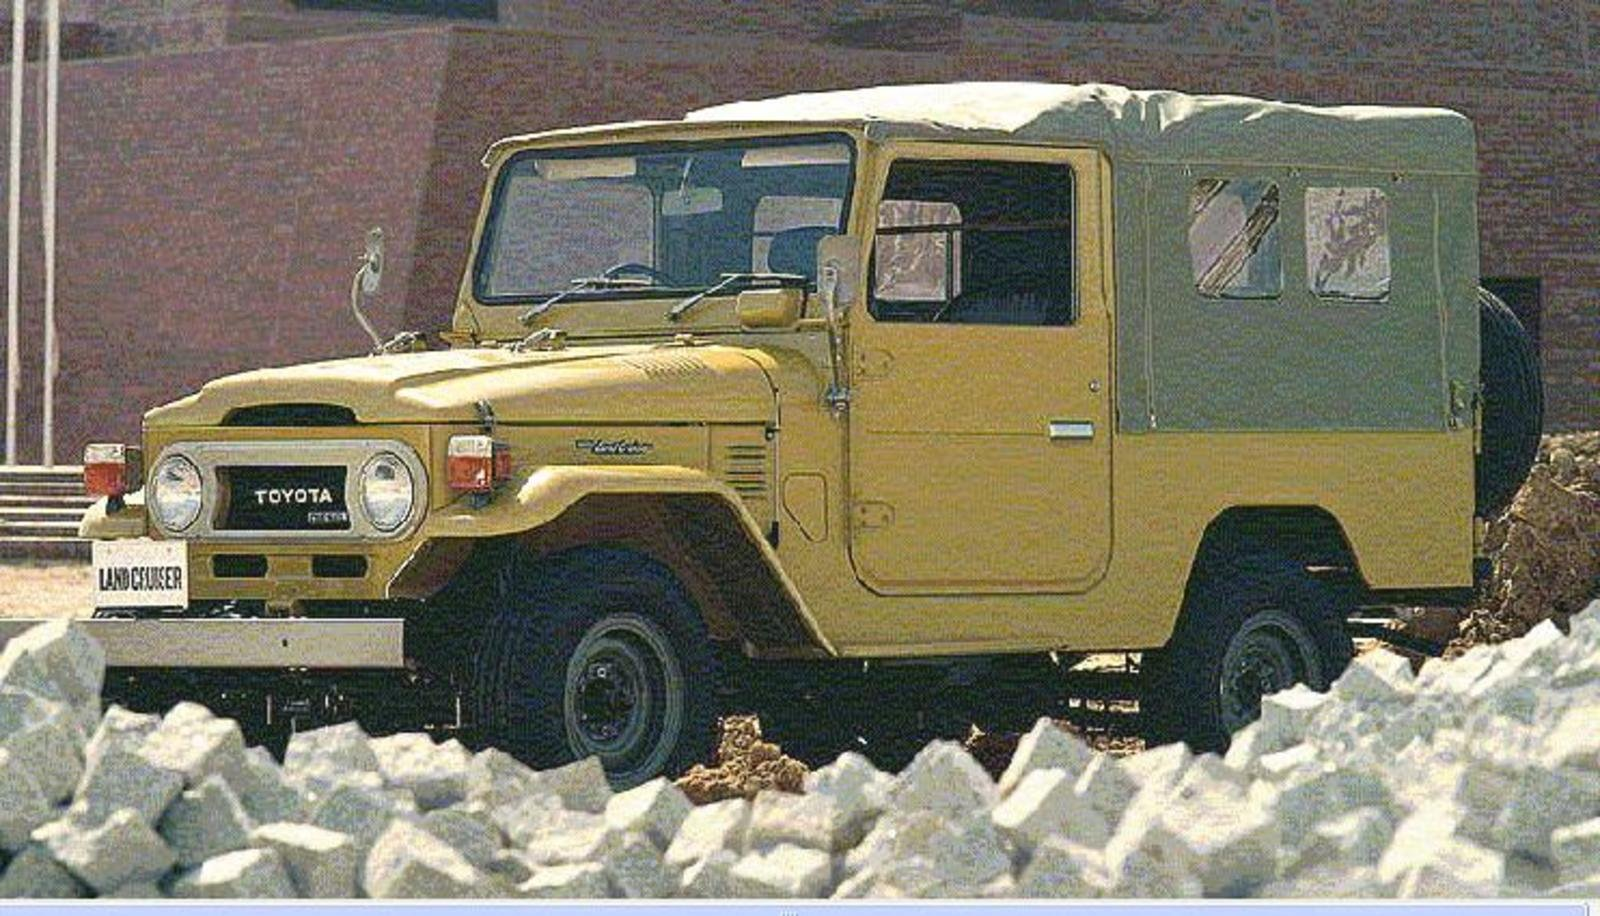 Toyota Land Cruiser Reviews Specs Prices Photos And Videos Top 300 2015 1955 1960 40 45 Series